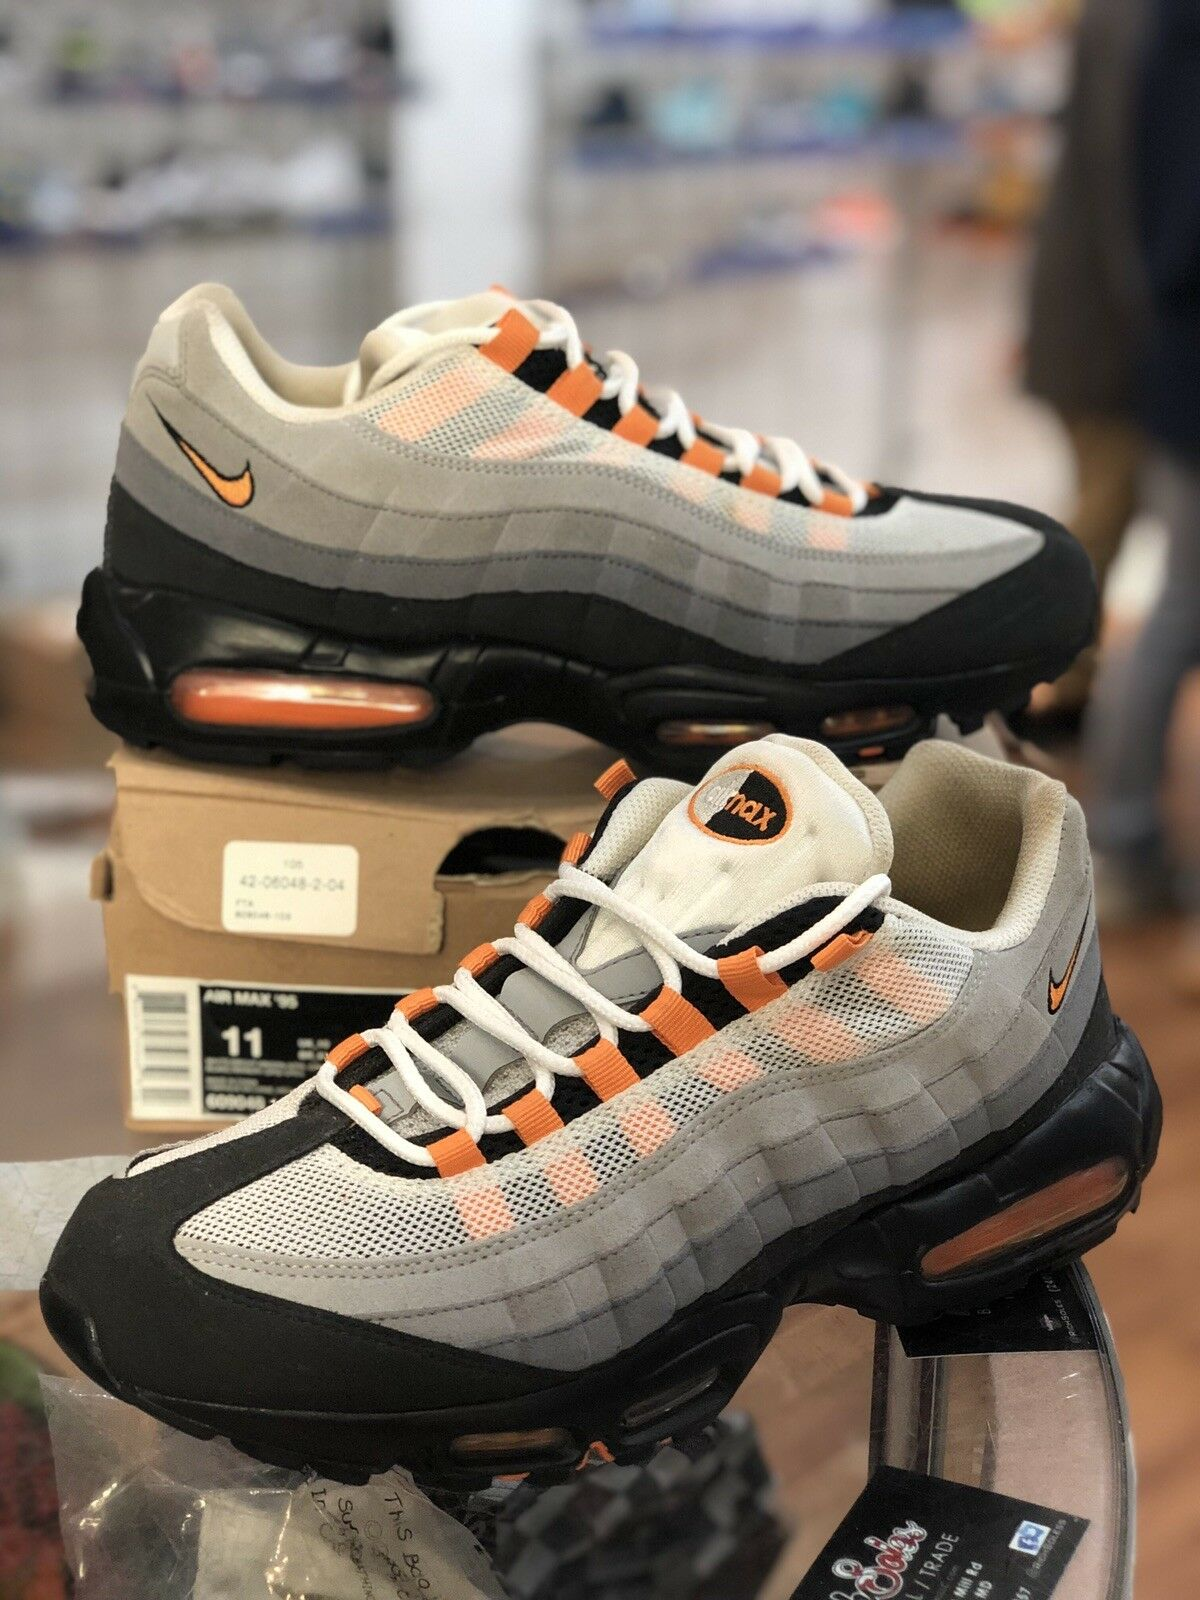 Air Max 95 WHITE BRGHT MNDRN-NTRL GRY-MDM white SIZE 11 609048-103